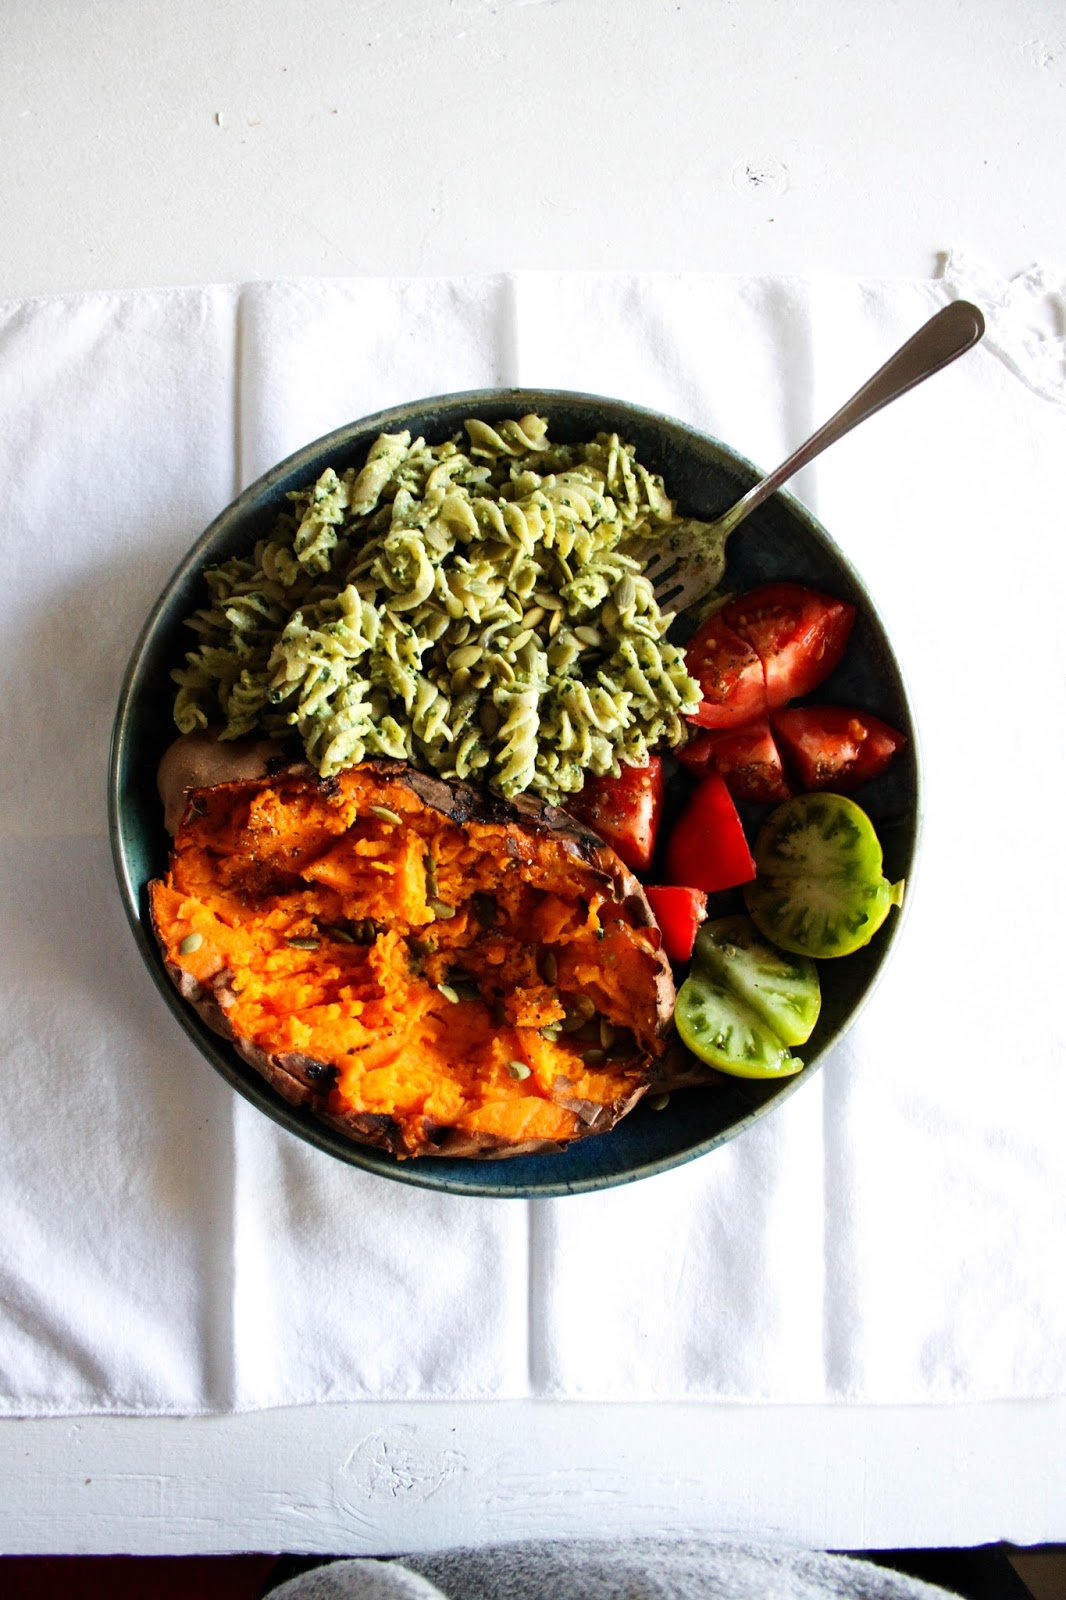 This Rawsome Vegan LifeTHE GLOW BOWLbaked sweet potato with